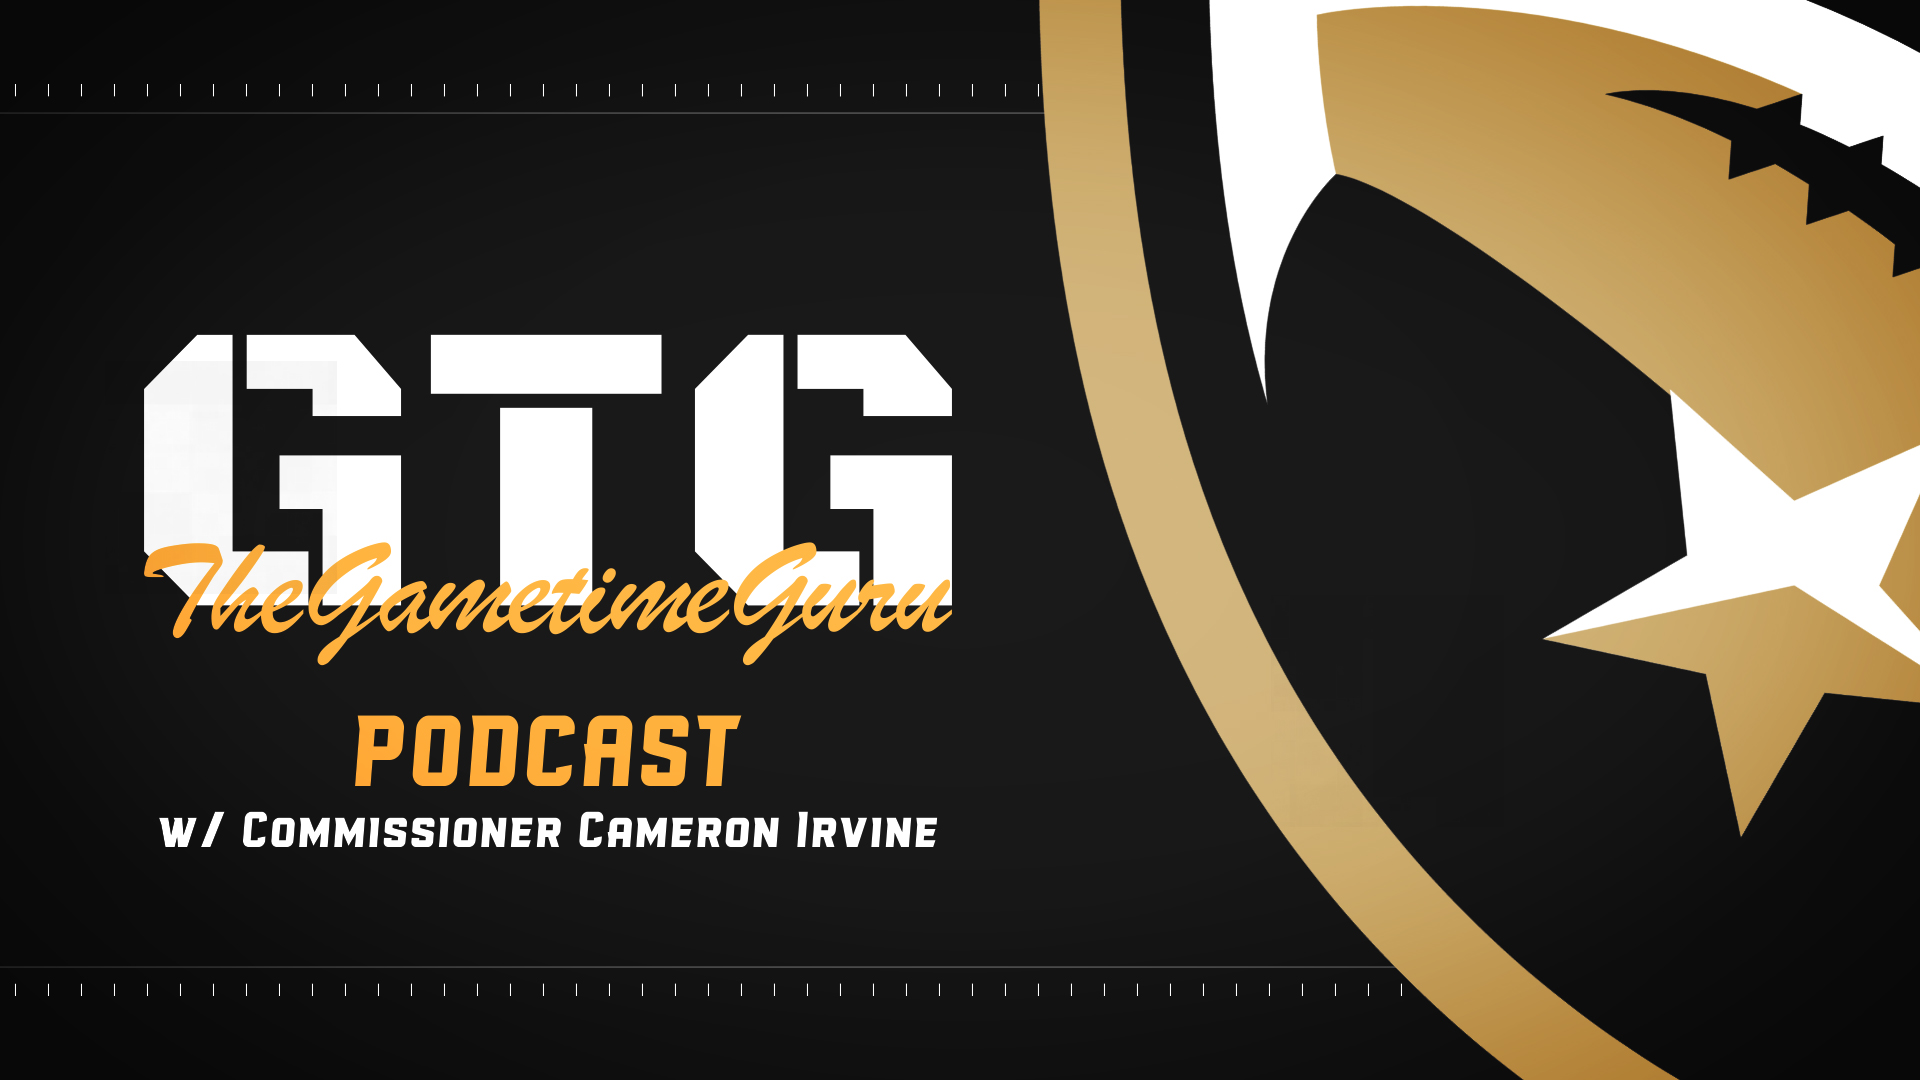 The Gametime Guru interviews Cameron Irvine